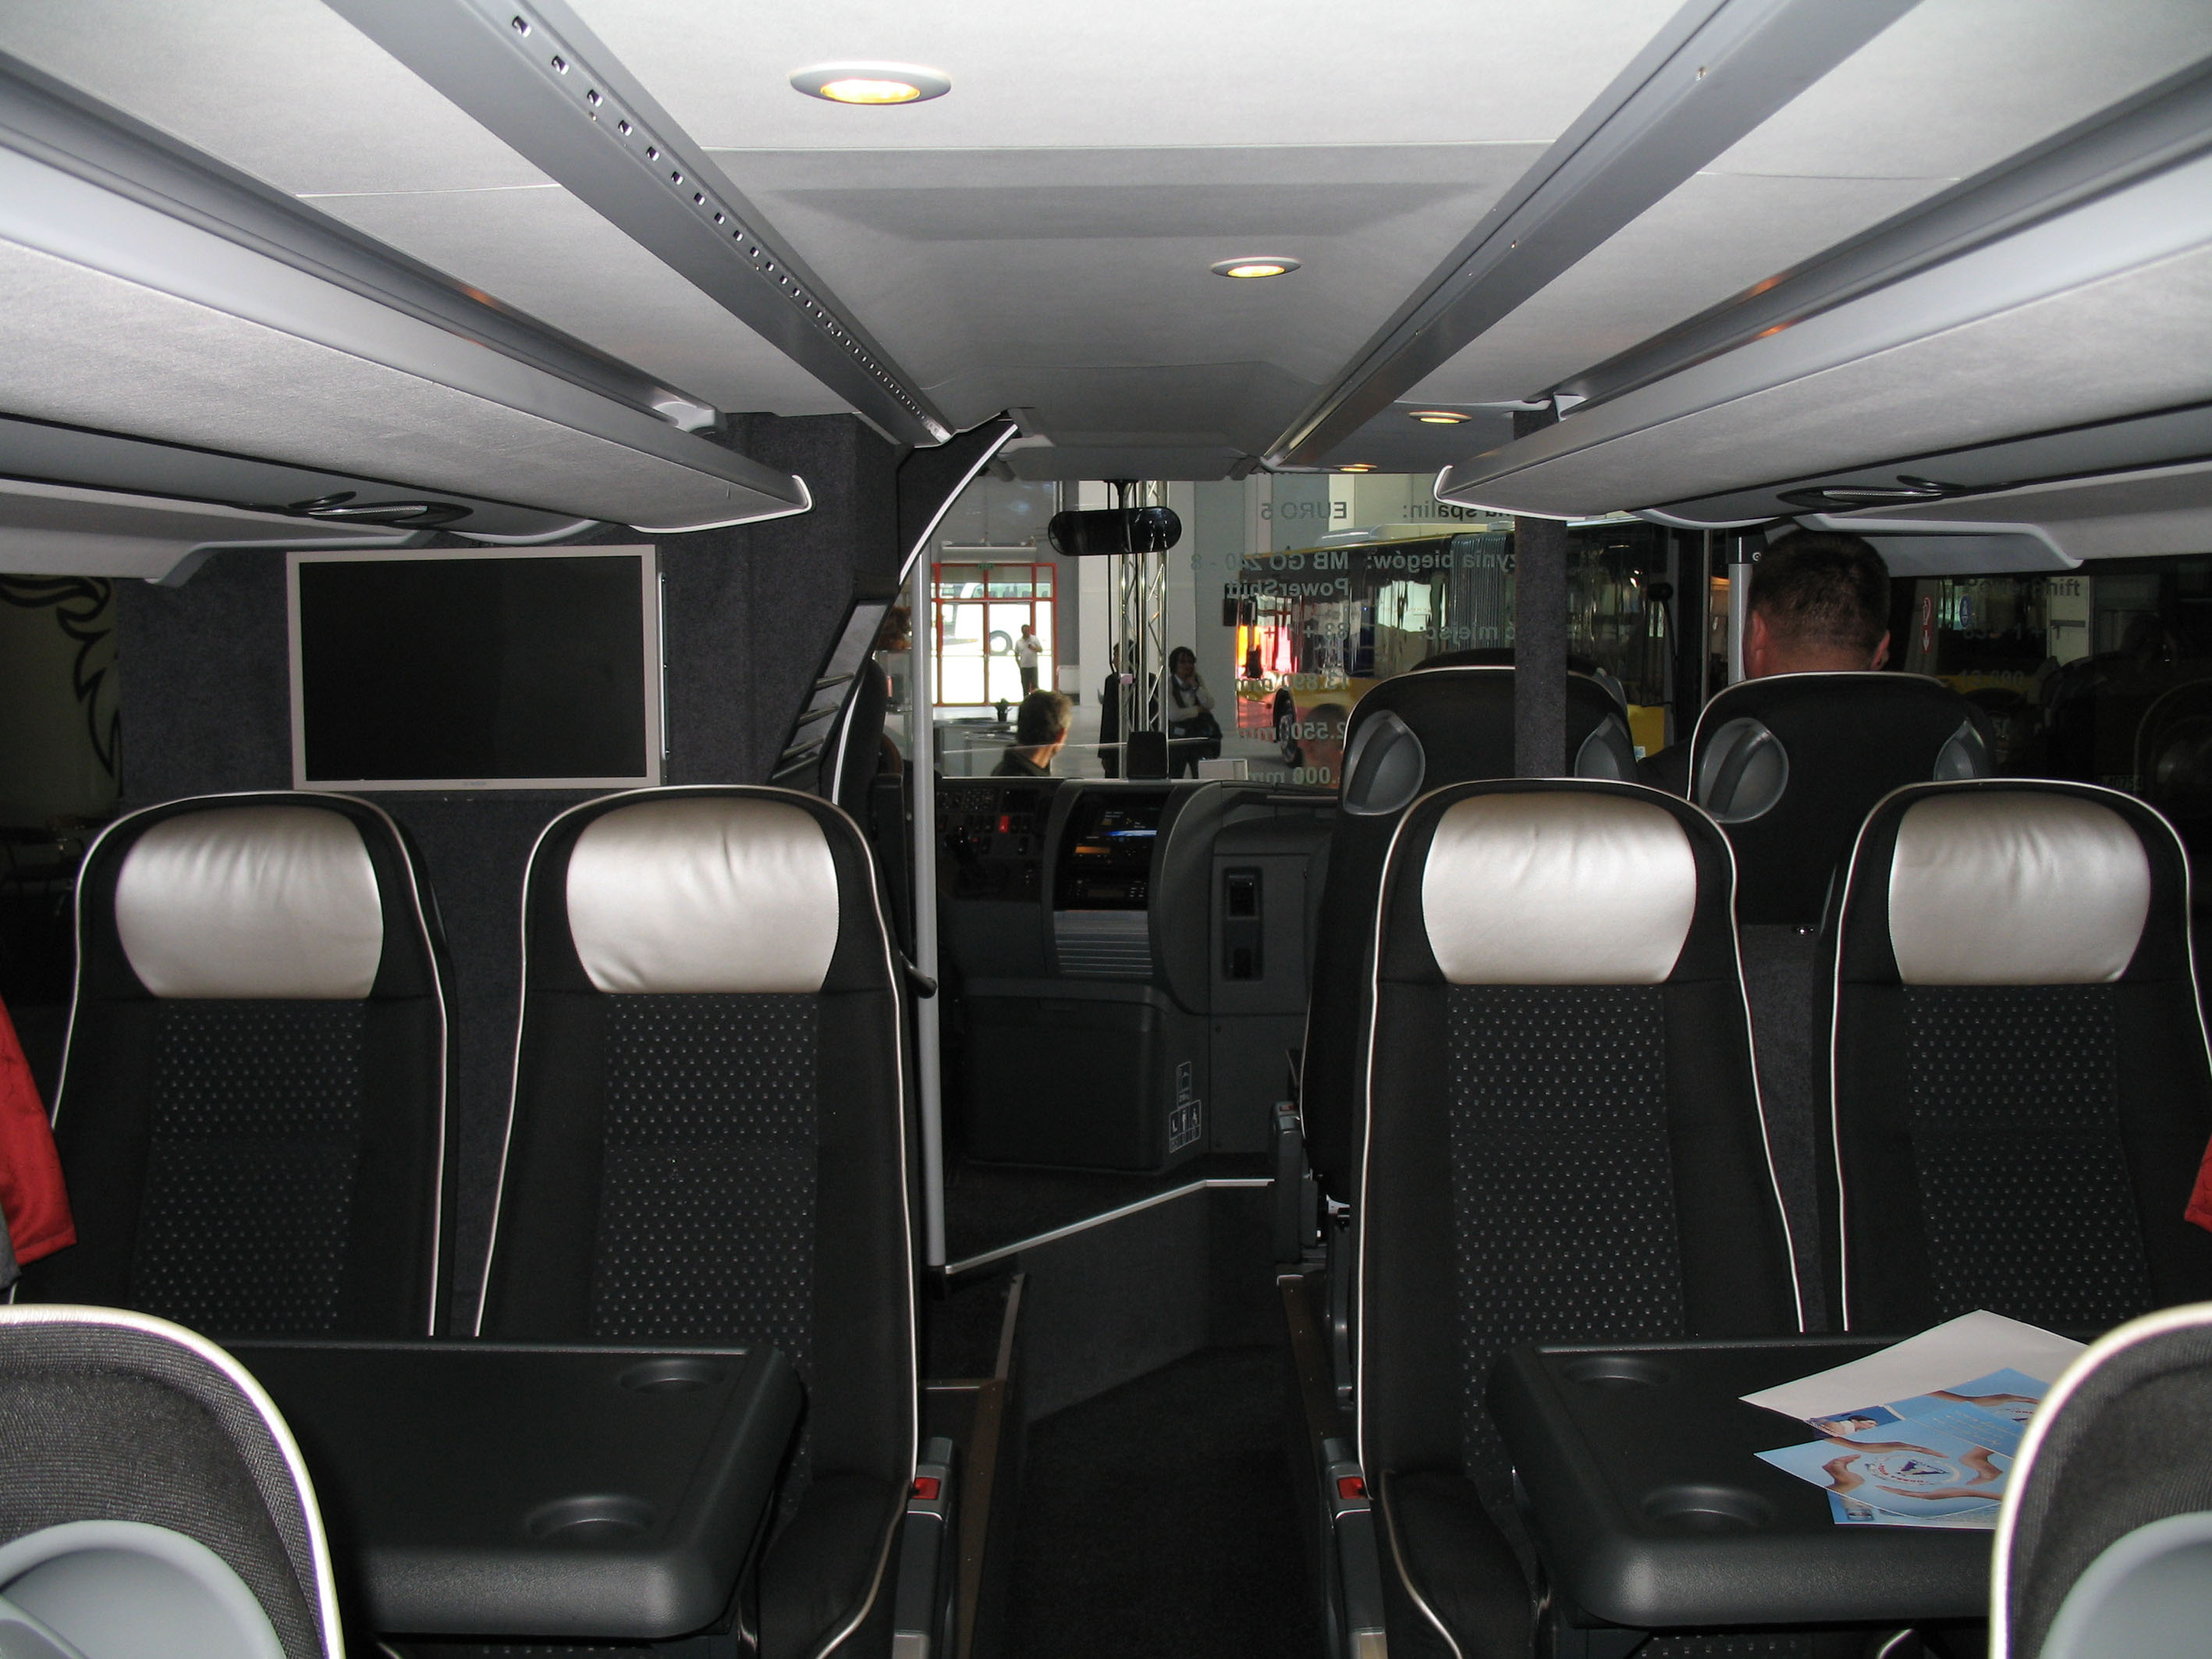 File:Setra S 431 DT - interior front.jpg - Wikimedia Commons